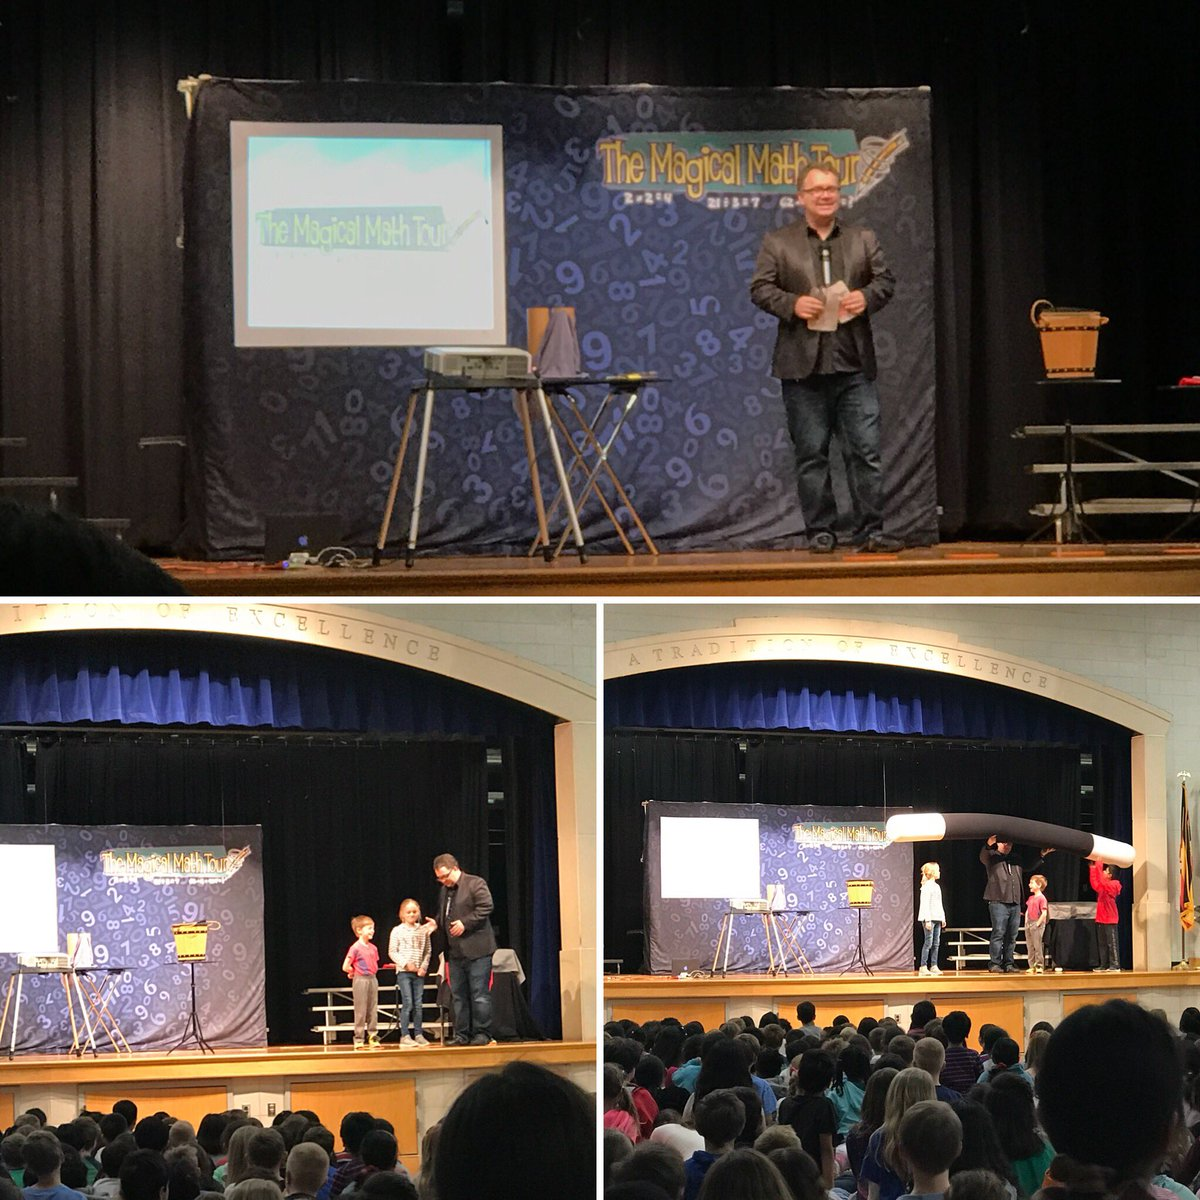 The Magicial Math Tour. Amazing assembly celebrating math! <a target='_blank' href='http://twitter.com/APSMath'>@APSMath</a> <a target='_blank' href='http://search.twitter.com/search?q=STEMday'><a target='_blank' href='https://twitter.com/hashtag/STEMday?src=hash'>#STEMday</a></a> <a target='_blank' href='https://t.co/ELKsZienmc'>https://t.co/ELKsZienmc</a>